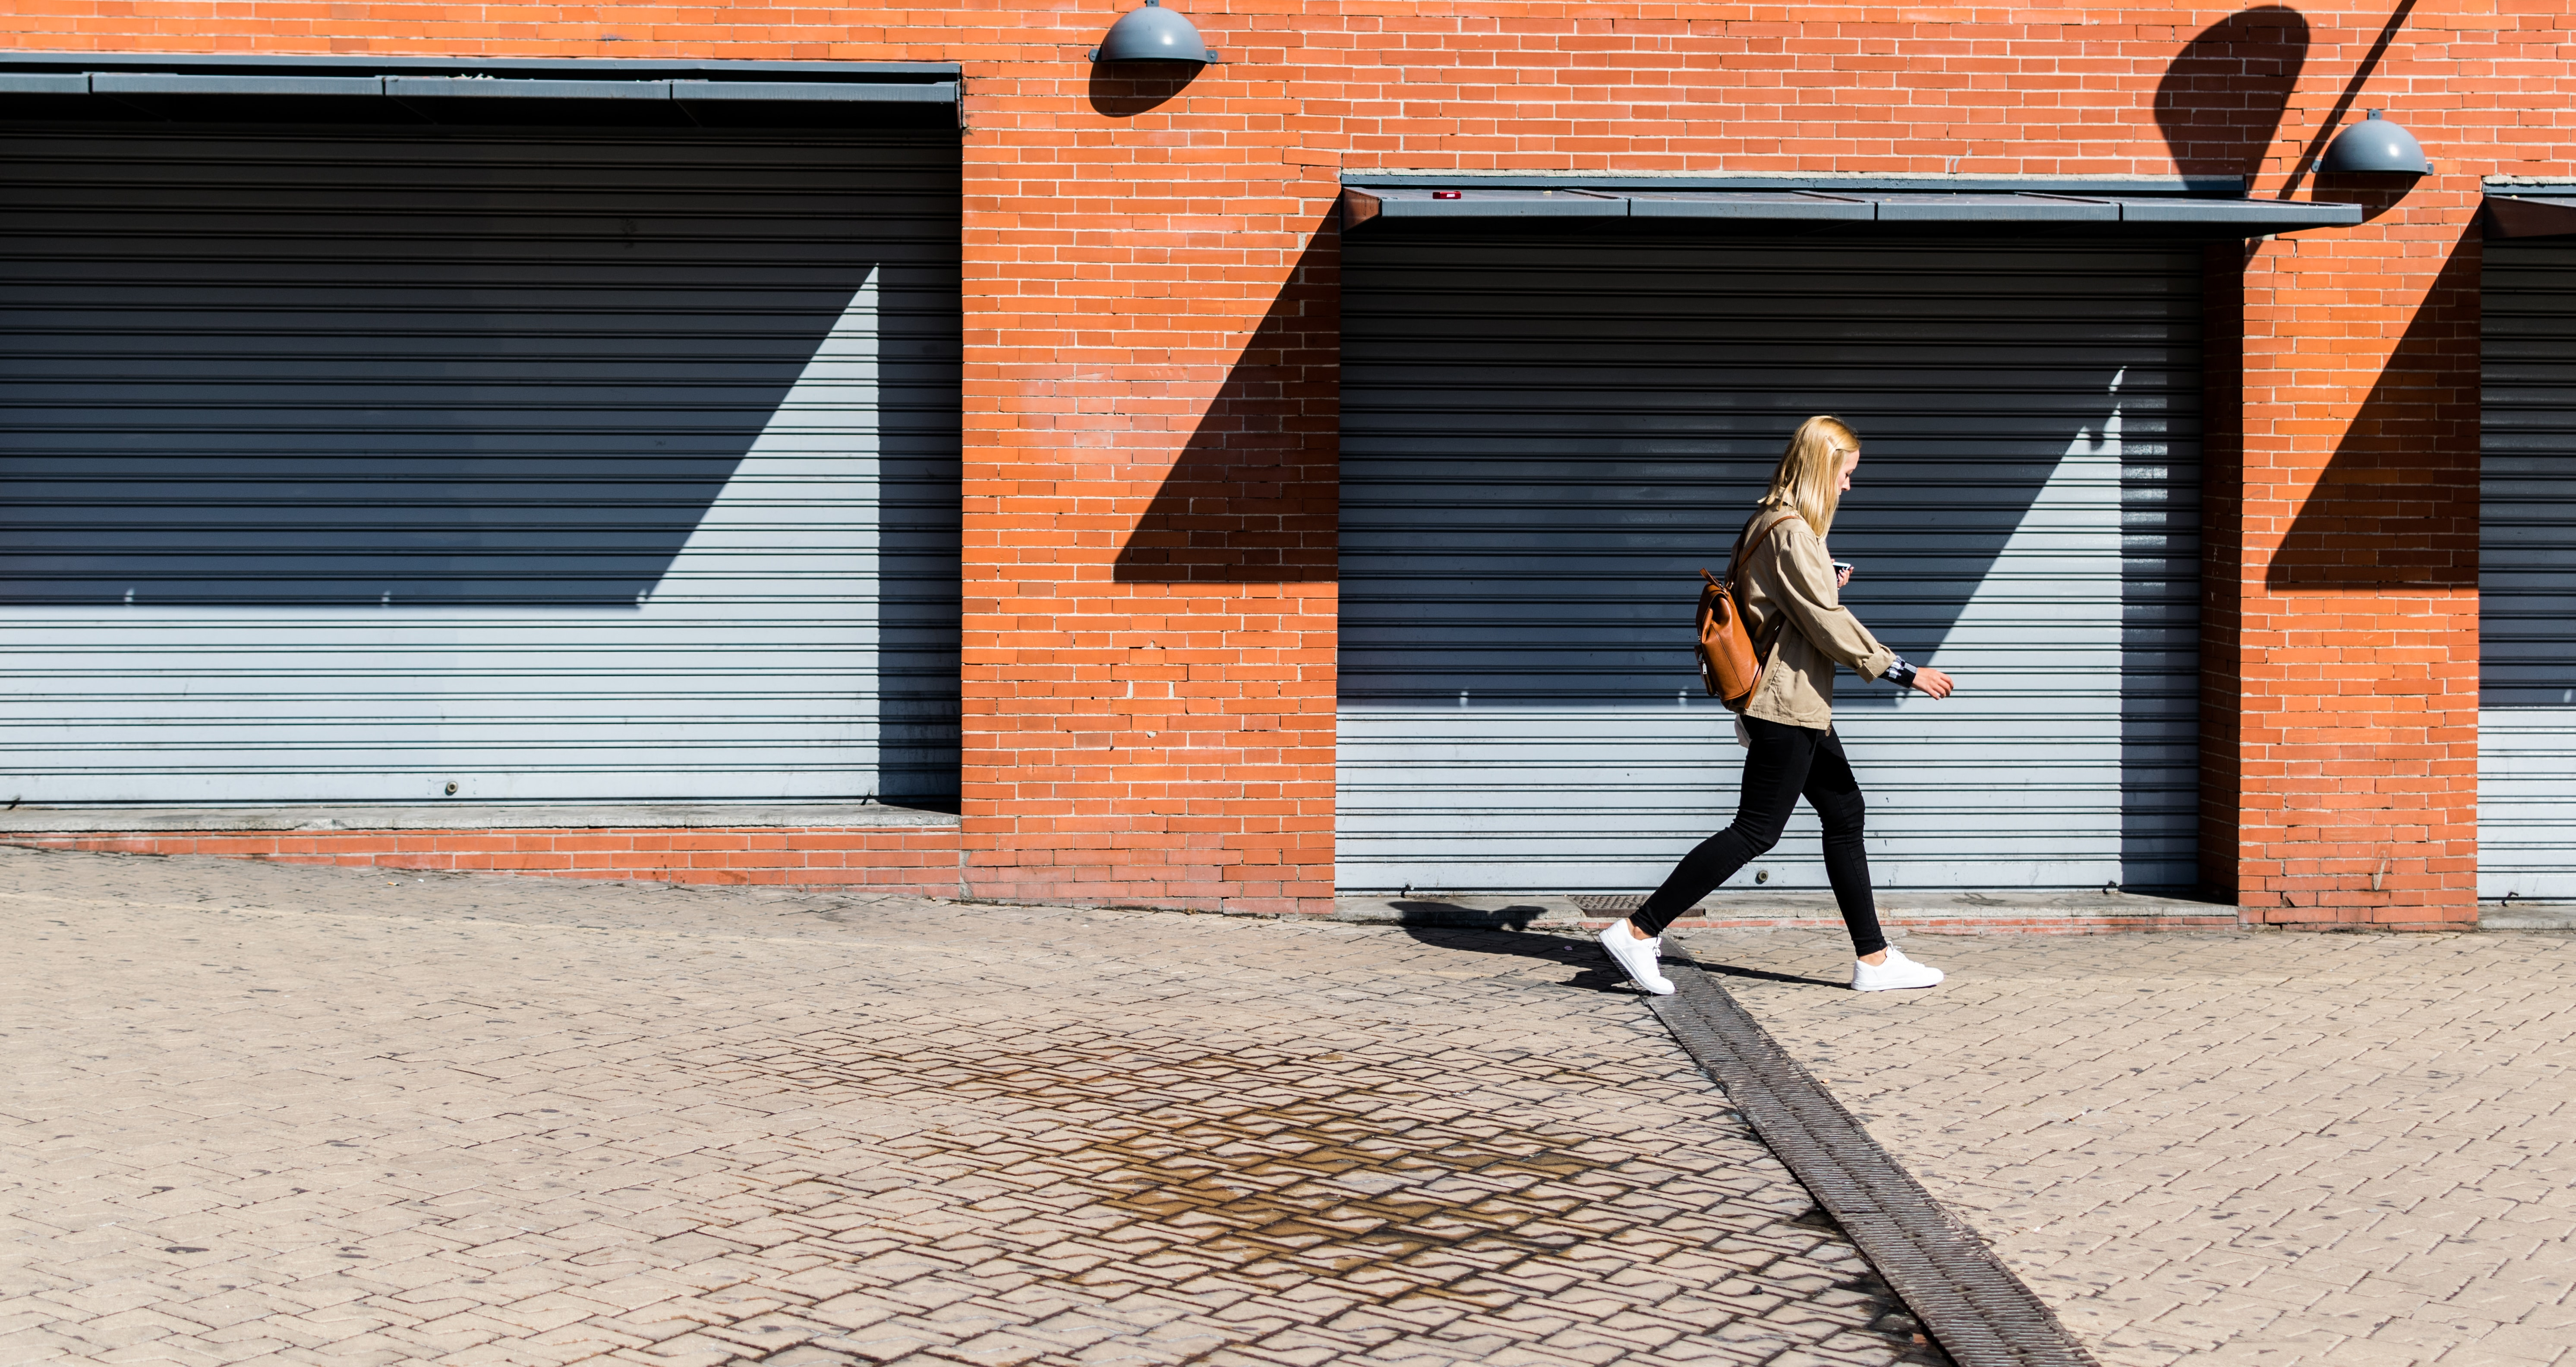 A woman is walking past a brick building at the Madrid Atocha Railway Station.